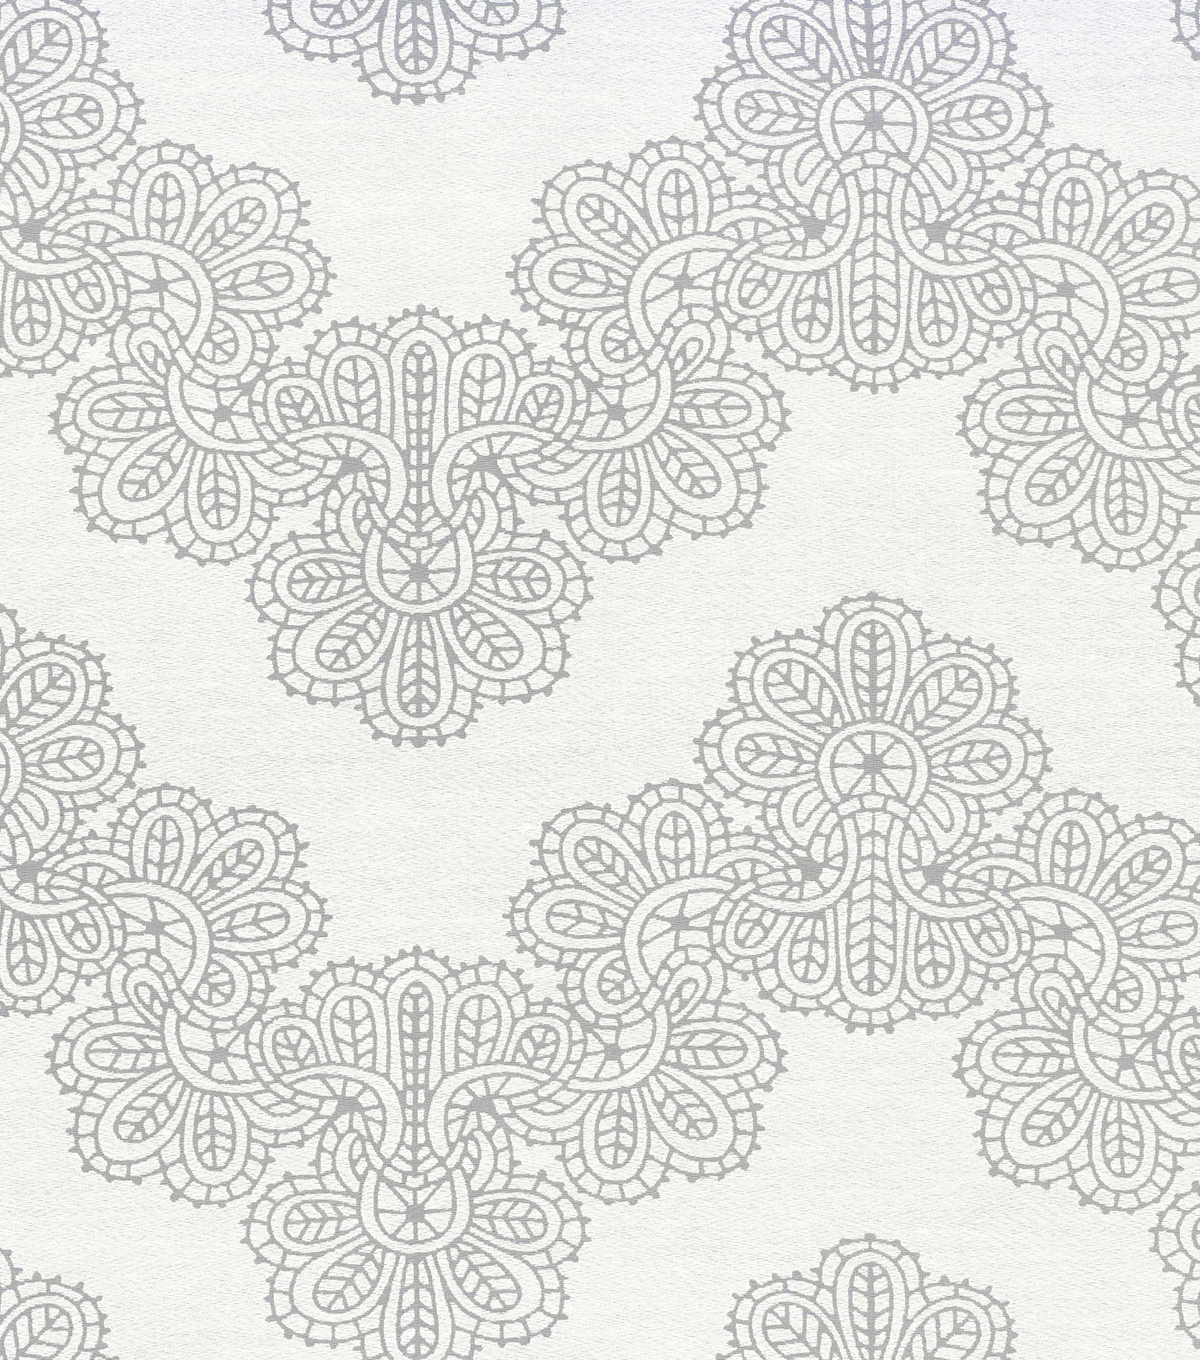 Waverly Sheer Fabric 56\u0022-Airwaves/Cream